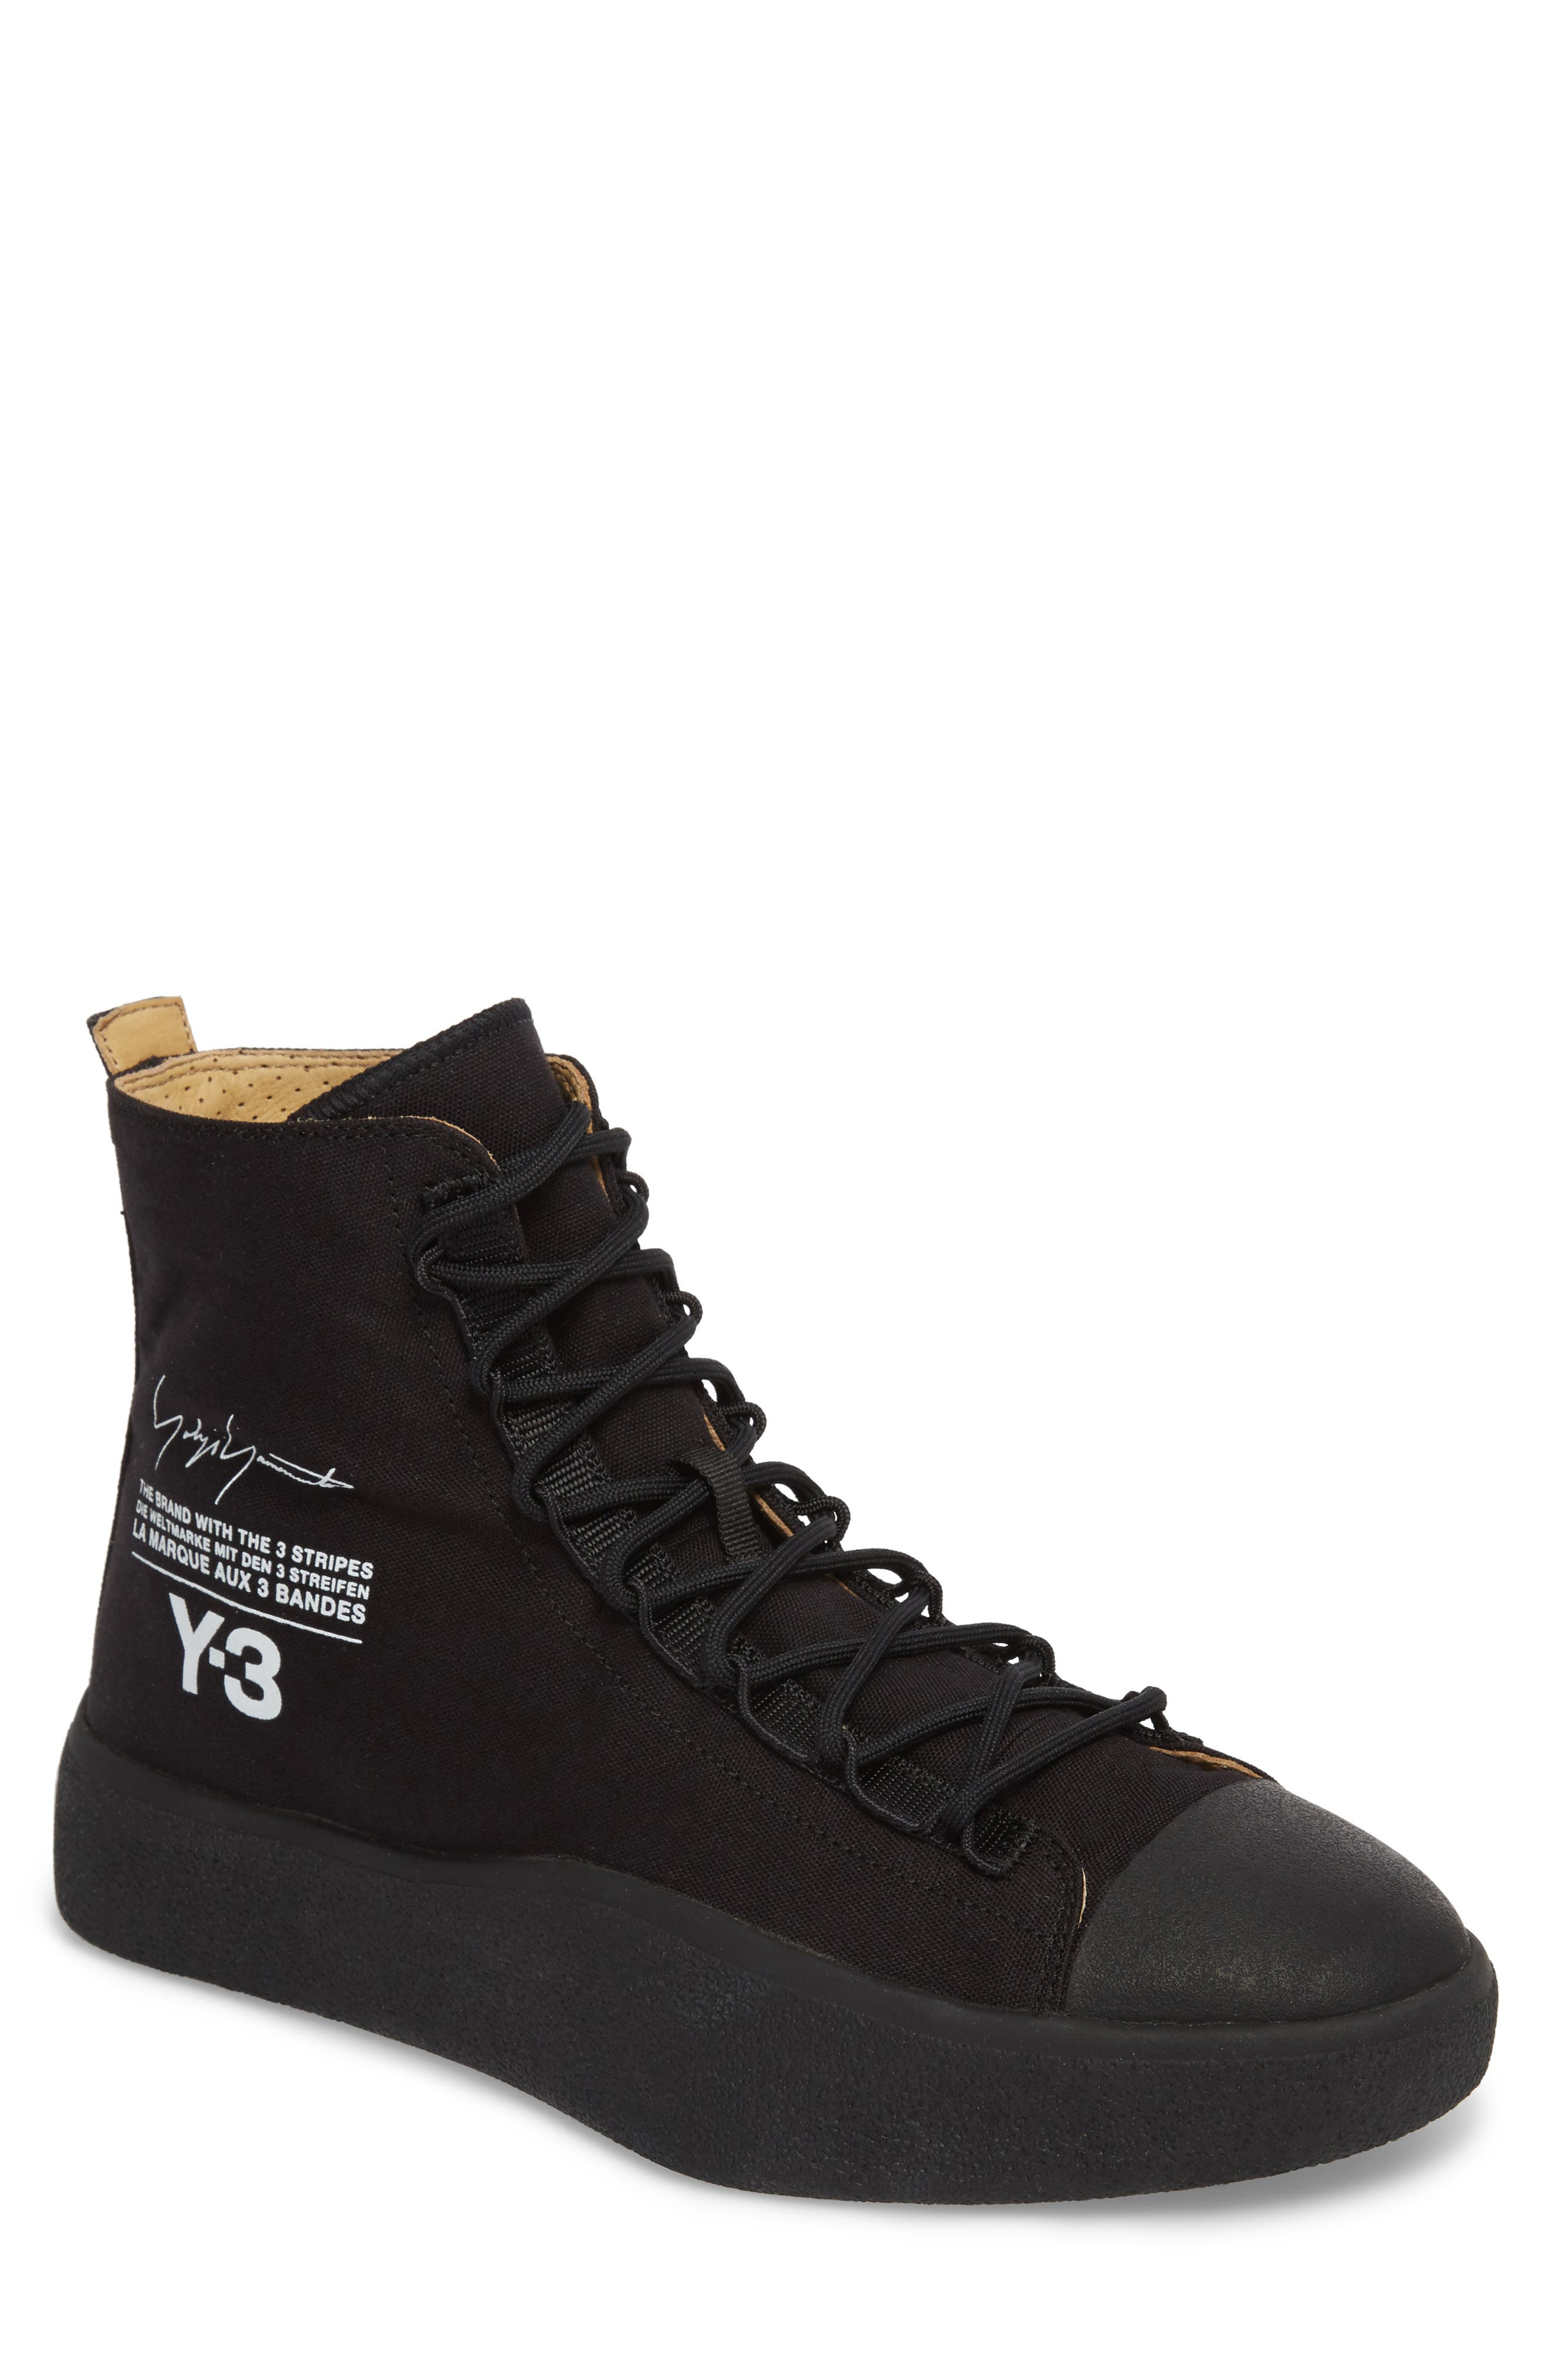 Alternate Image 1 Selected - Y-3 x adidas Bashyo High Top Sneaker (Men)